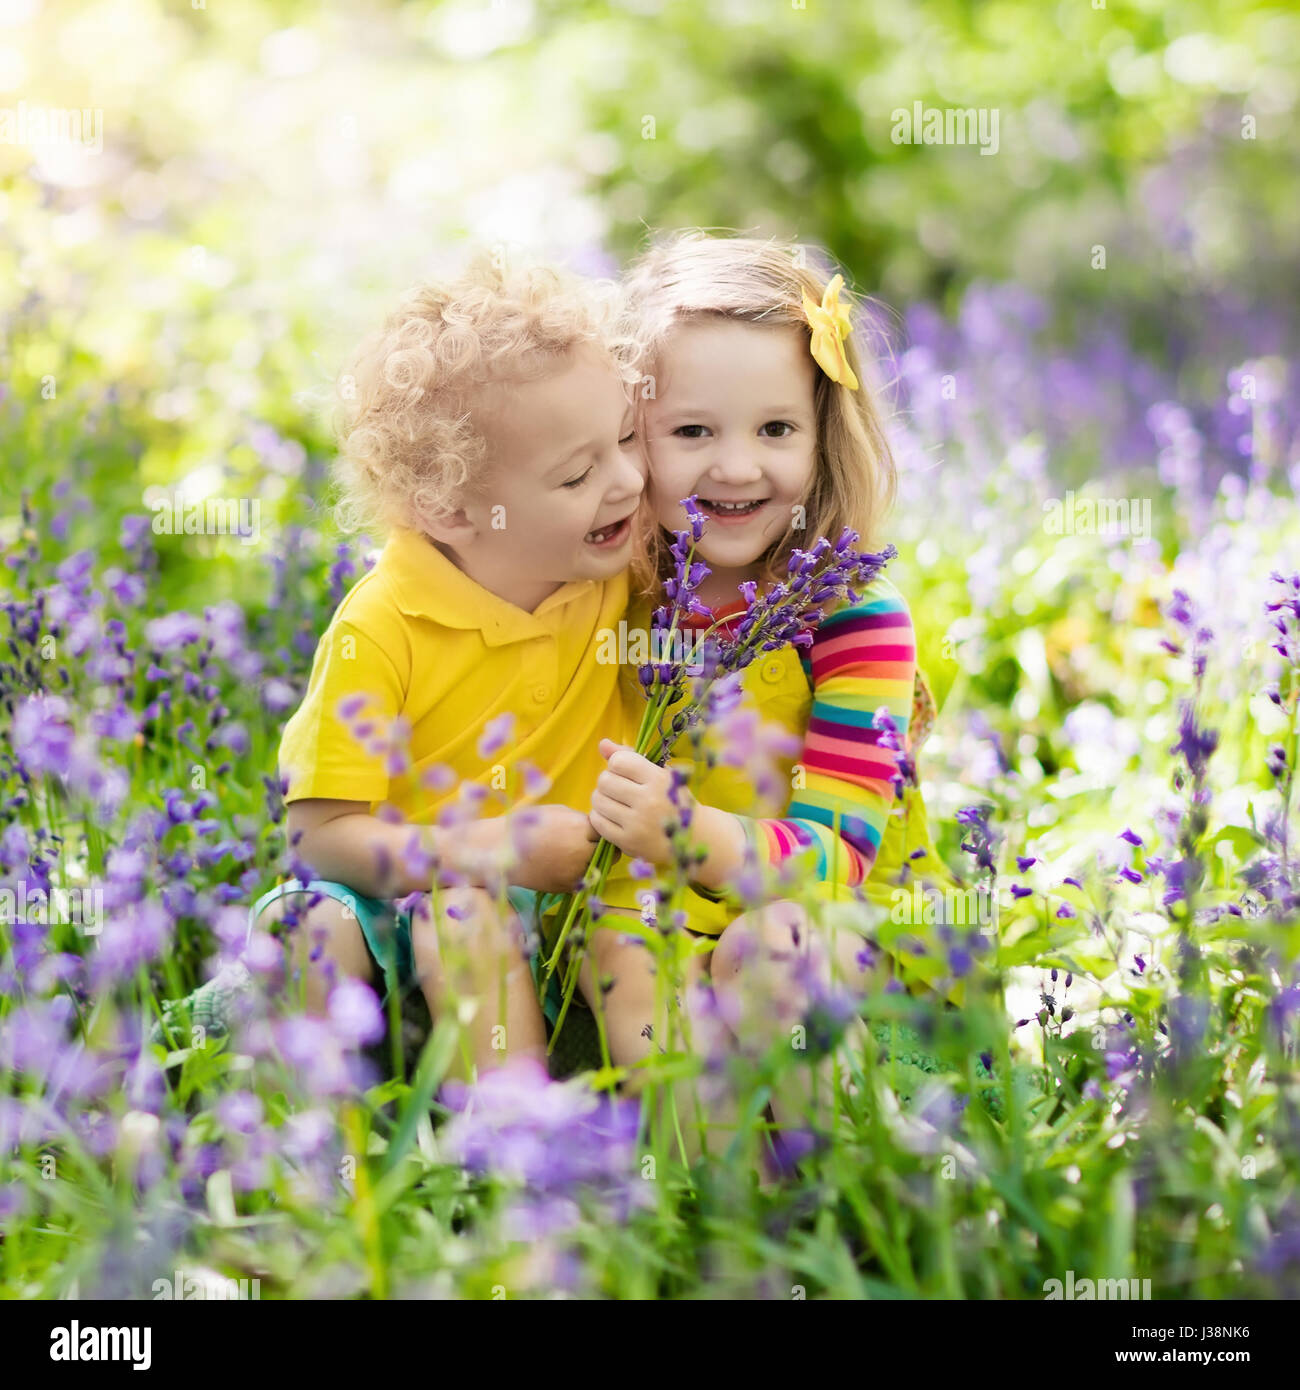 kids with bluebell flowers boy and girl gardening children play outdoor in bluebells meadow